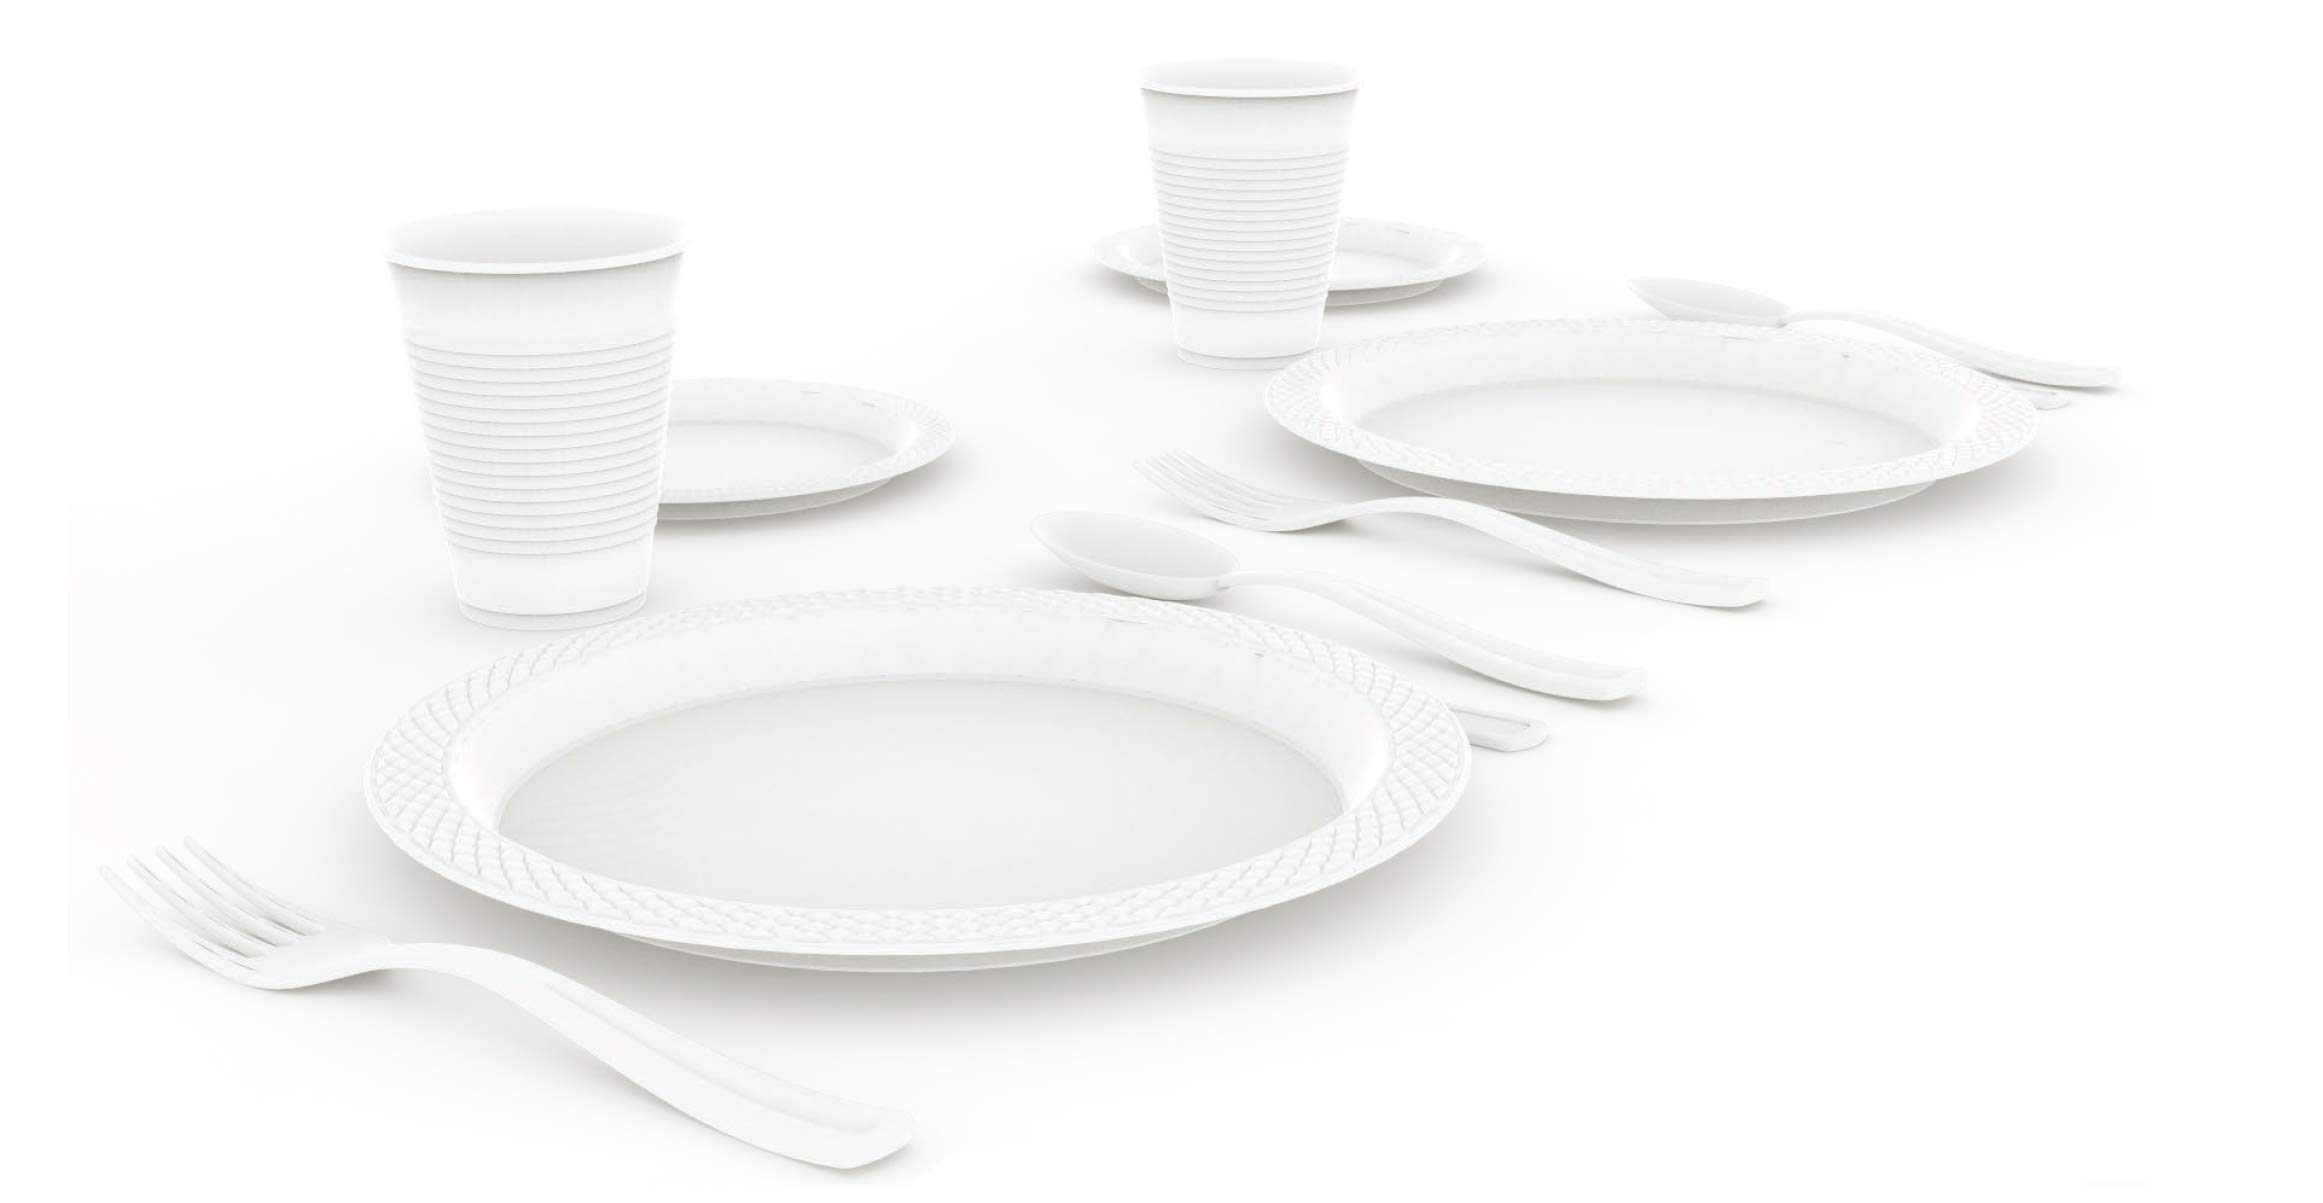 Exquisite 12-Pack Premium Plastic Tablecloth 54 Inch. x 108 Inch. Rectangle Table Cover-White by Exquisite (Image #2)